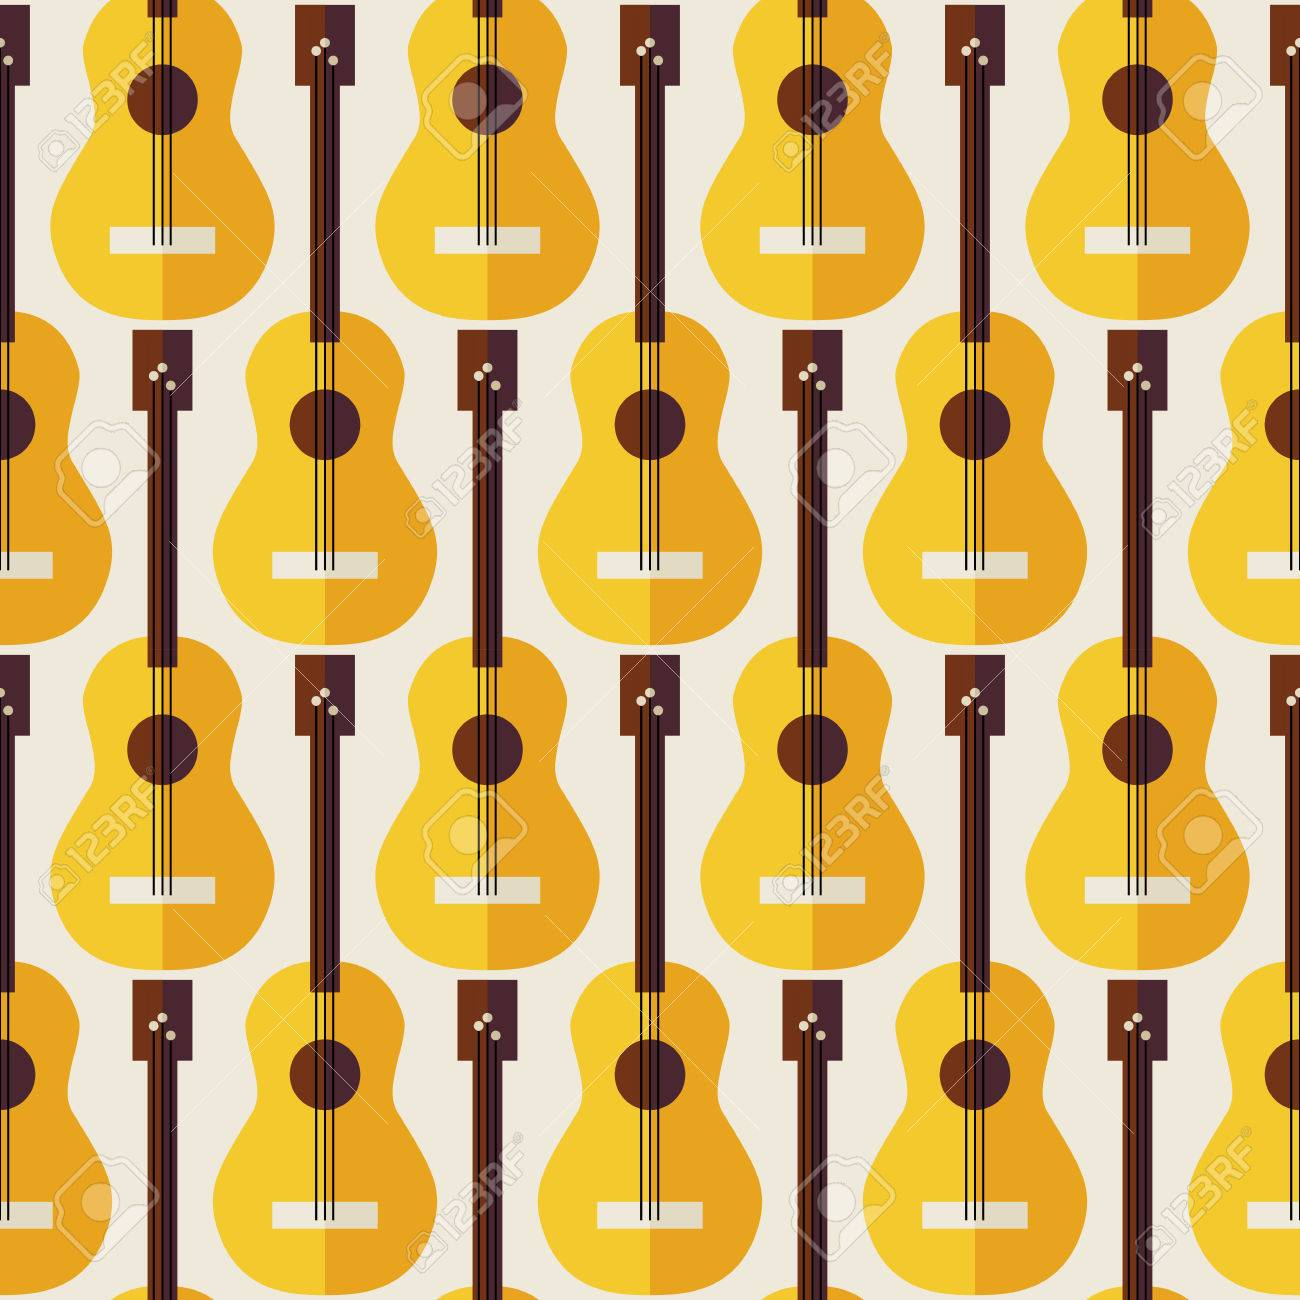 pattern music instrument guitar flat style vector seamless texture